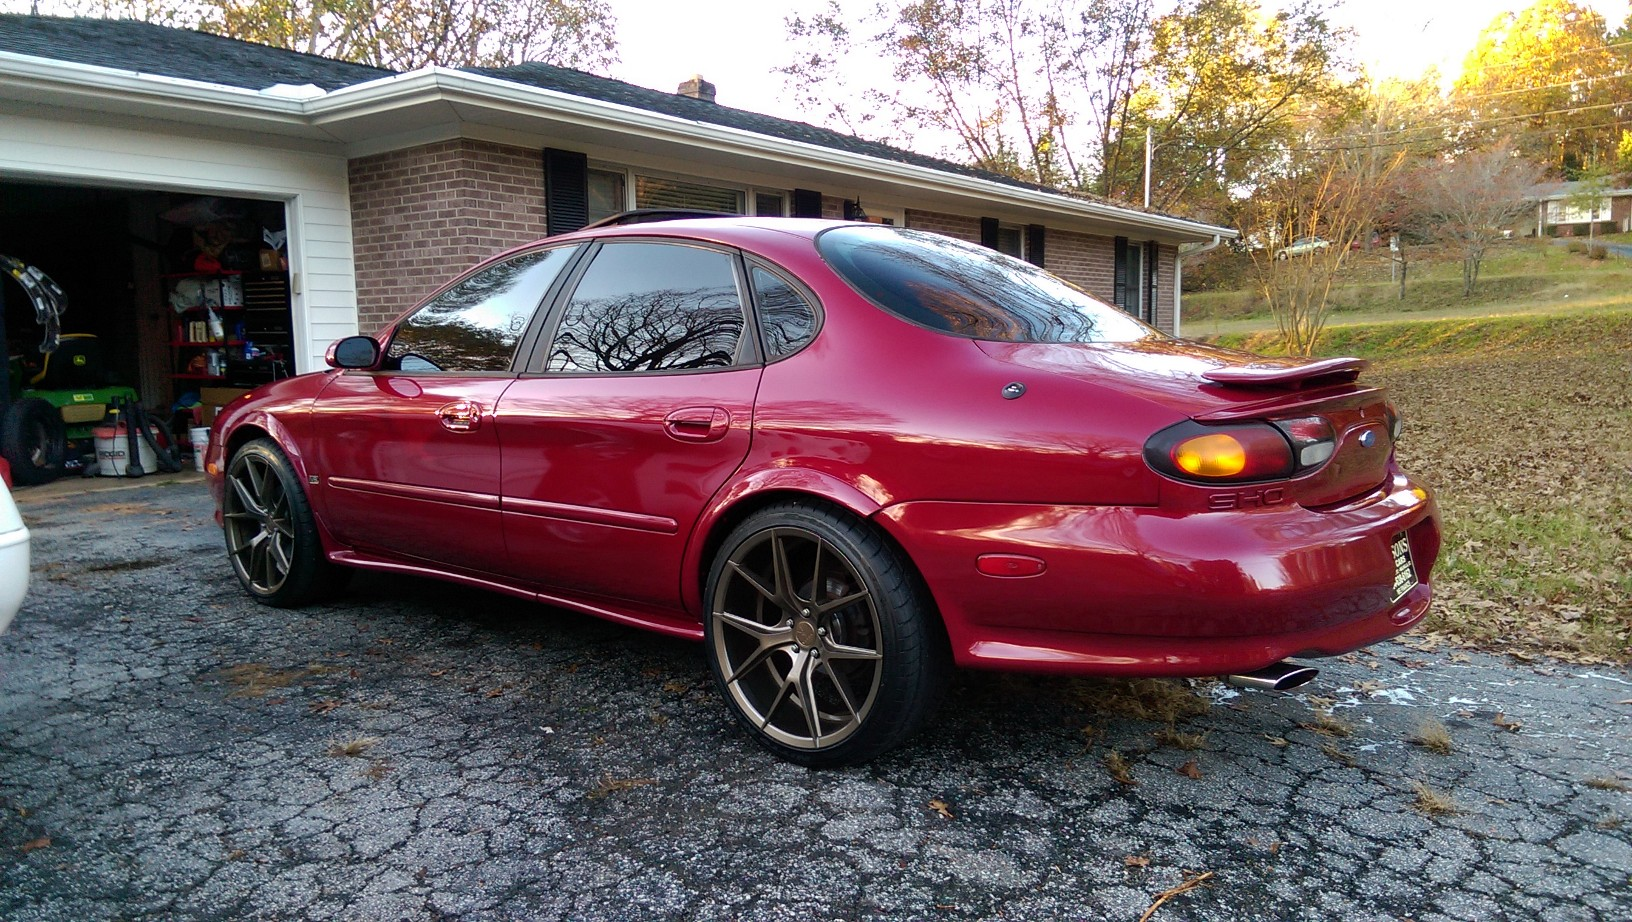 D Clemson Tiger S Sho Wp on 1997 Ford Taurus